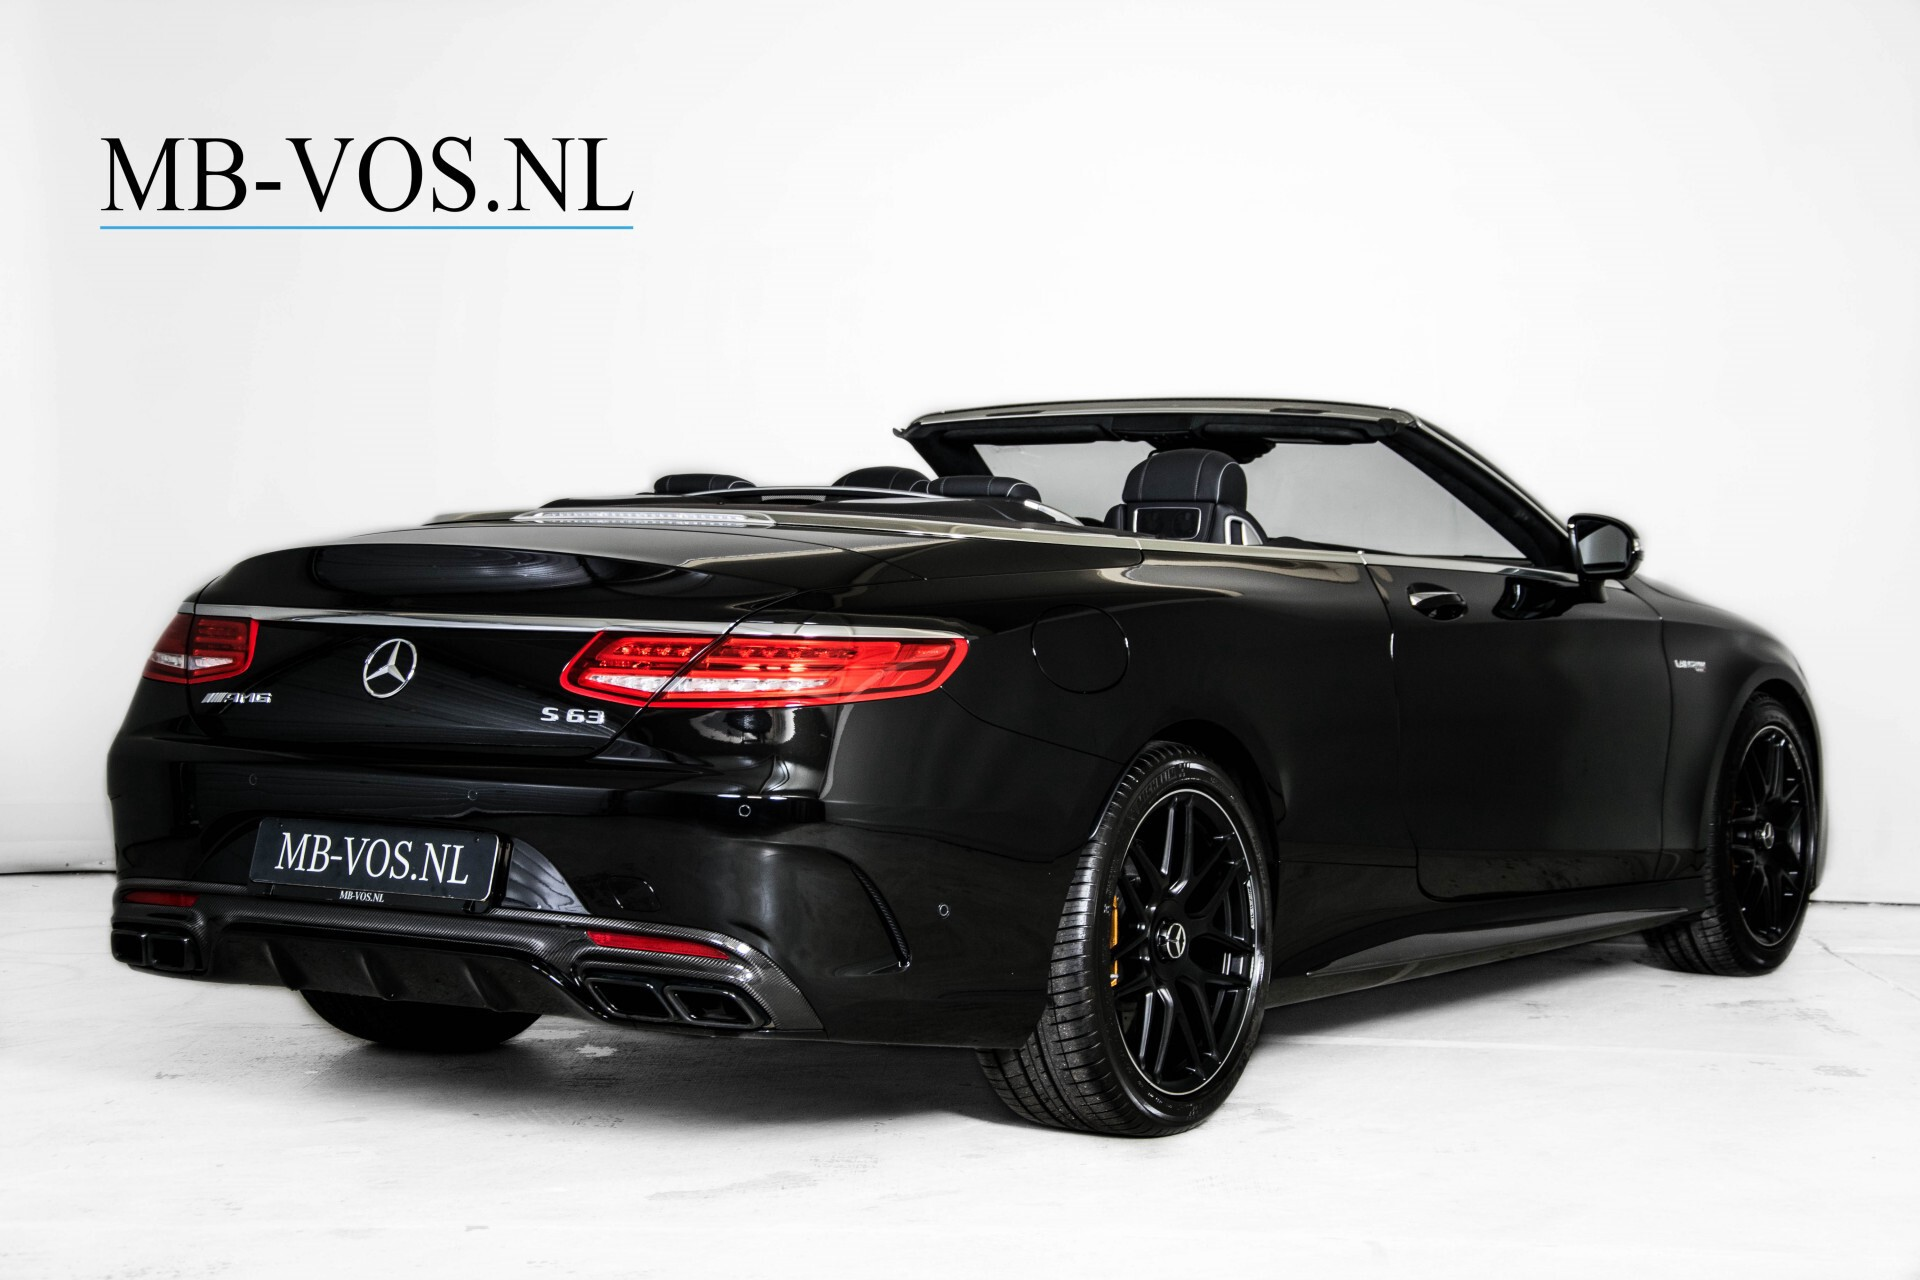 Mercedes-Benz S-Klasse Cabrio 63 AMG 4-M Ceramic/Designo/Carbon/High End/TV Aut7 Foto 2